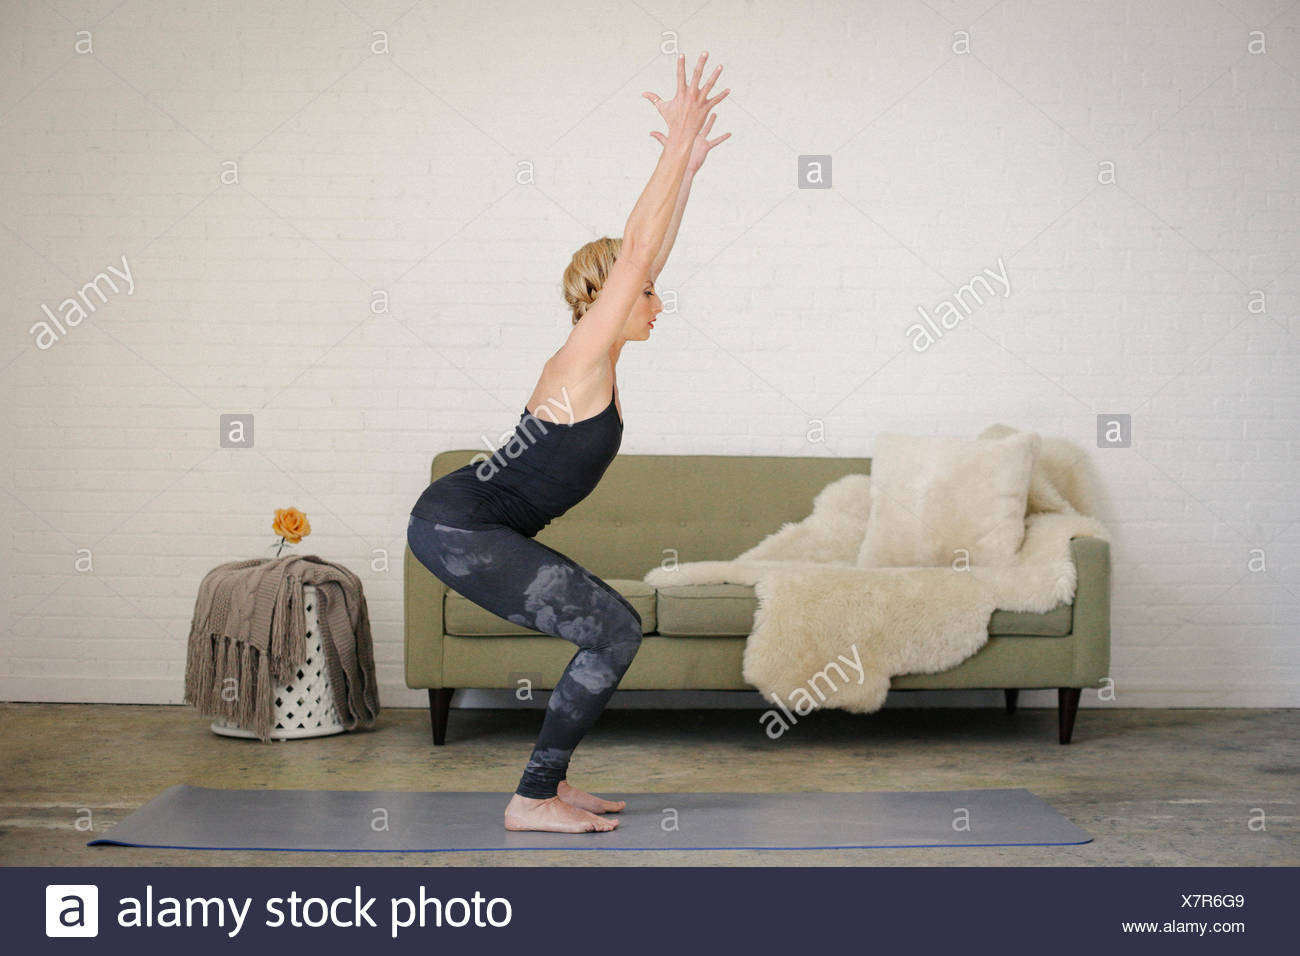 A blonde woman in leotard and leggings, standing on a yoga mat in a room, doing yoga, squatting down with her arms raised. - Stock Image